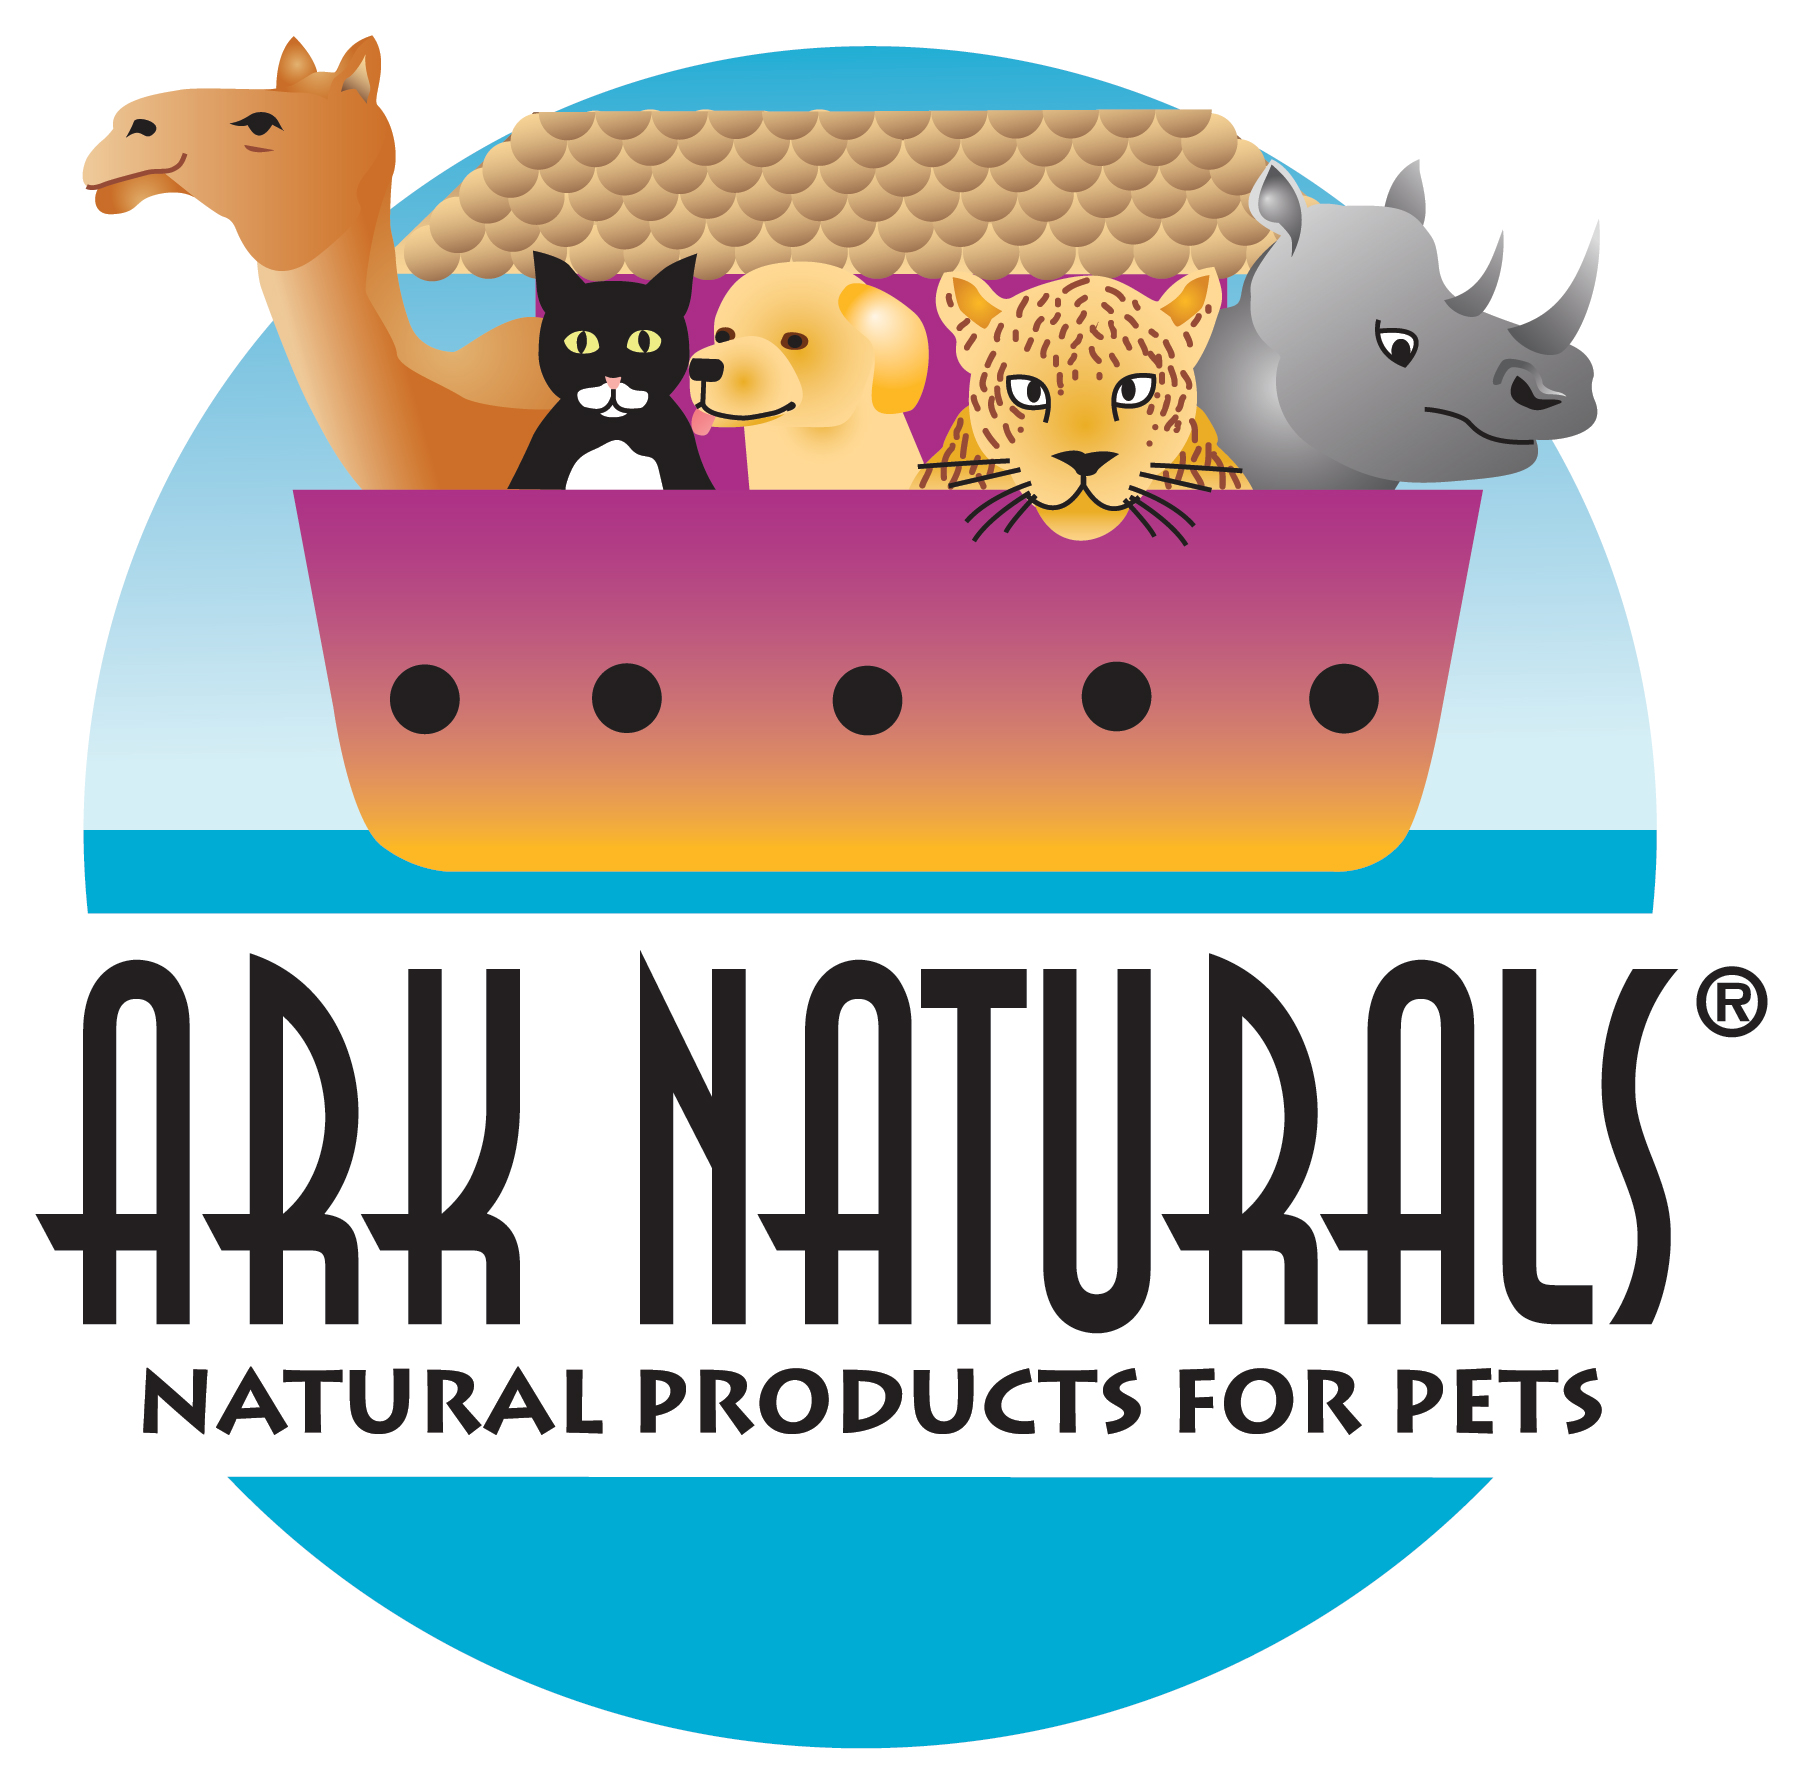 Natural Pet Products | Holistic Wellness & Remedy Items Dogs & Cats - Ark Naturals